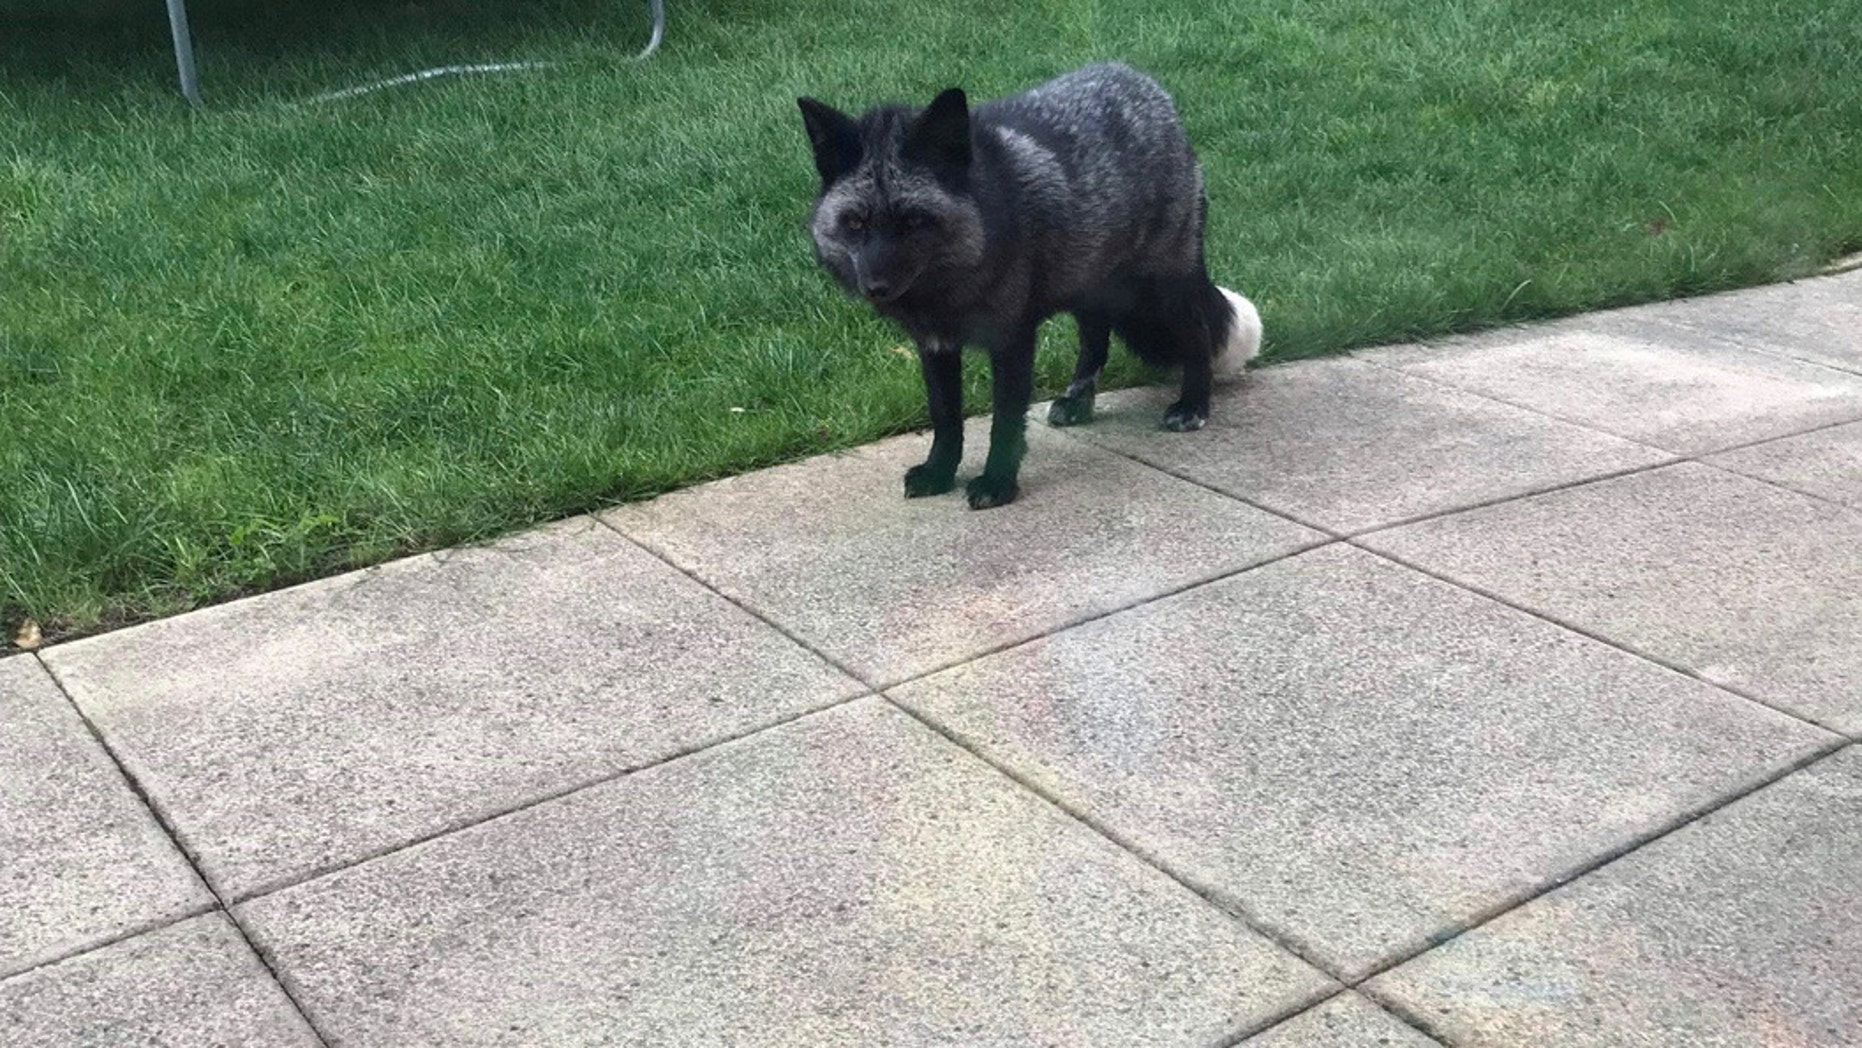 Rare admission at RSPCA center after silver fox found in Cheshire garden. (Credit: Anna McArdle)